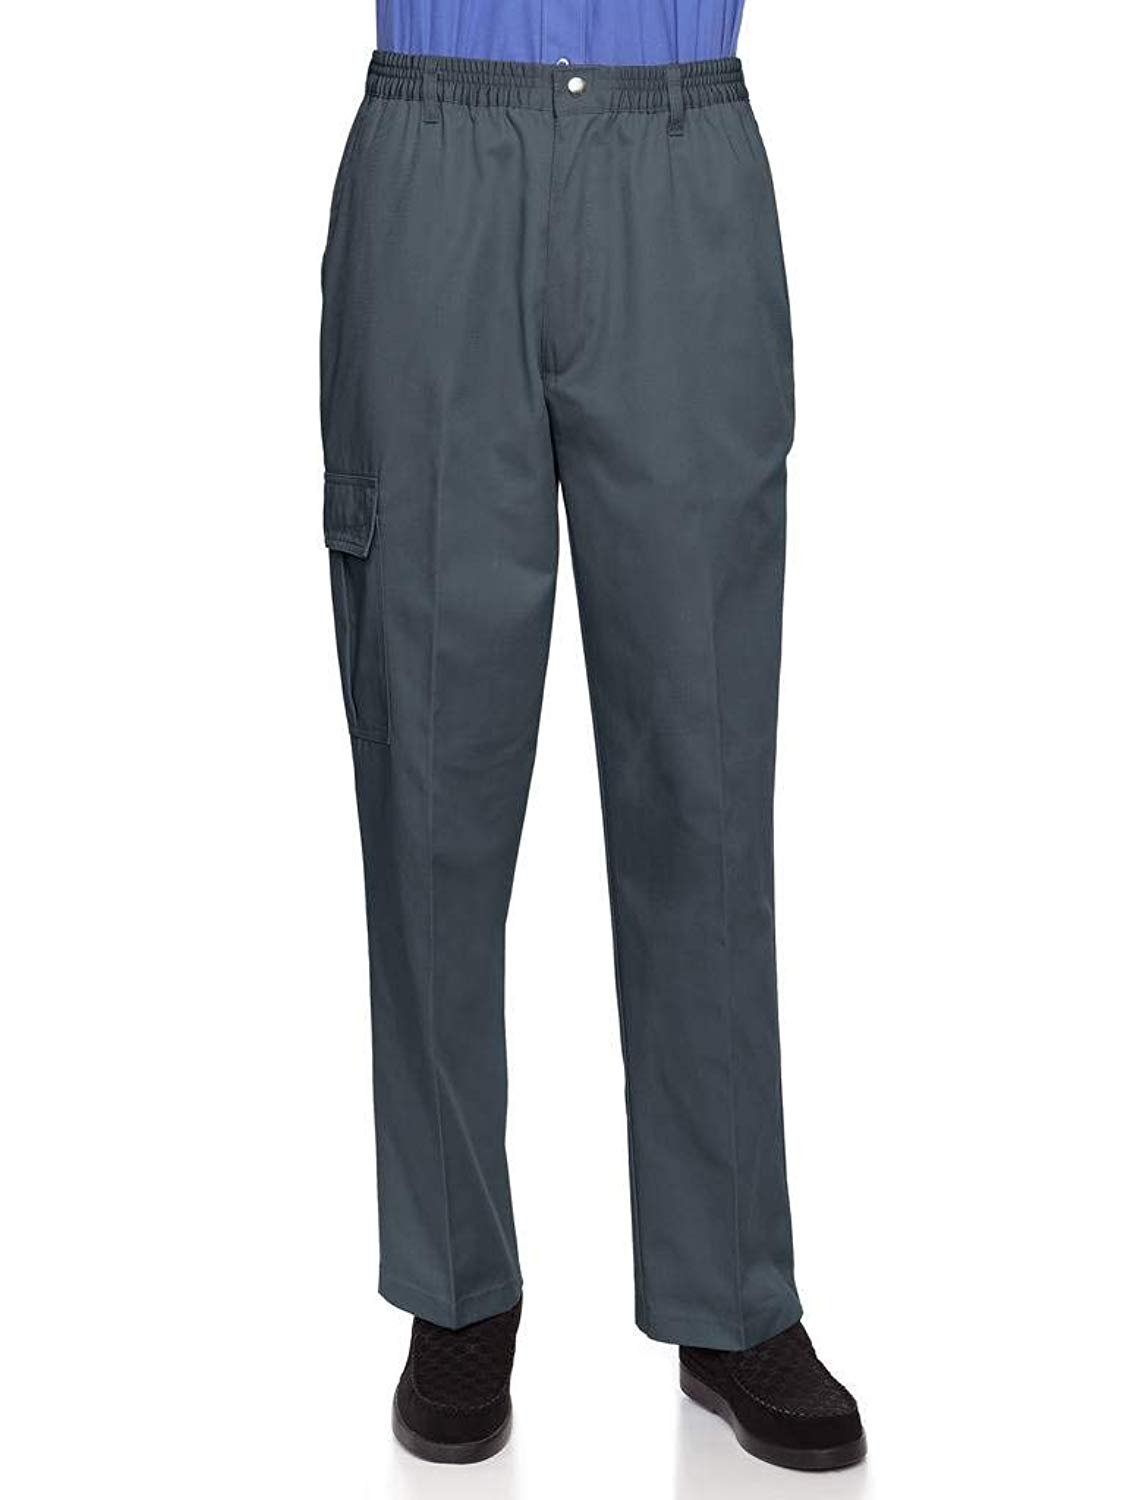 AKA Men's Full Elastic Waist Twill Casual Pant